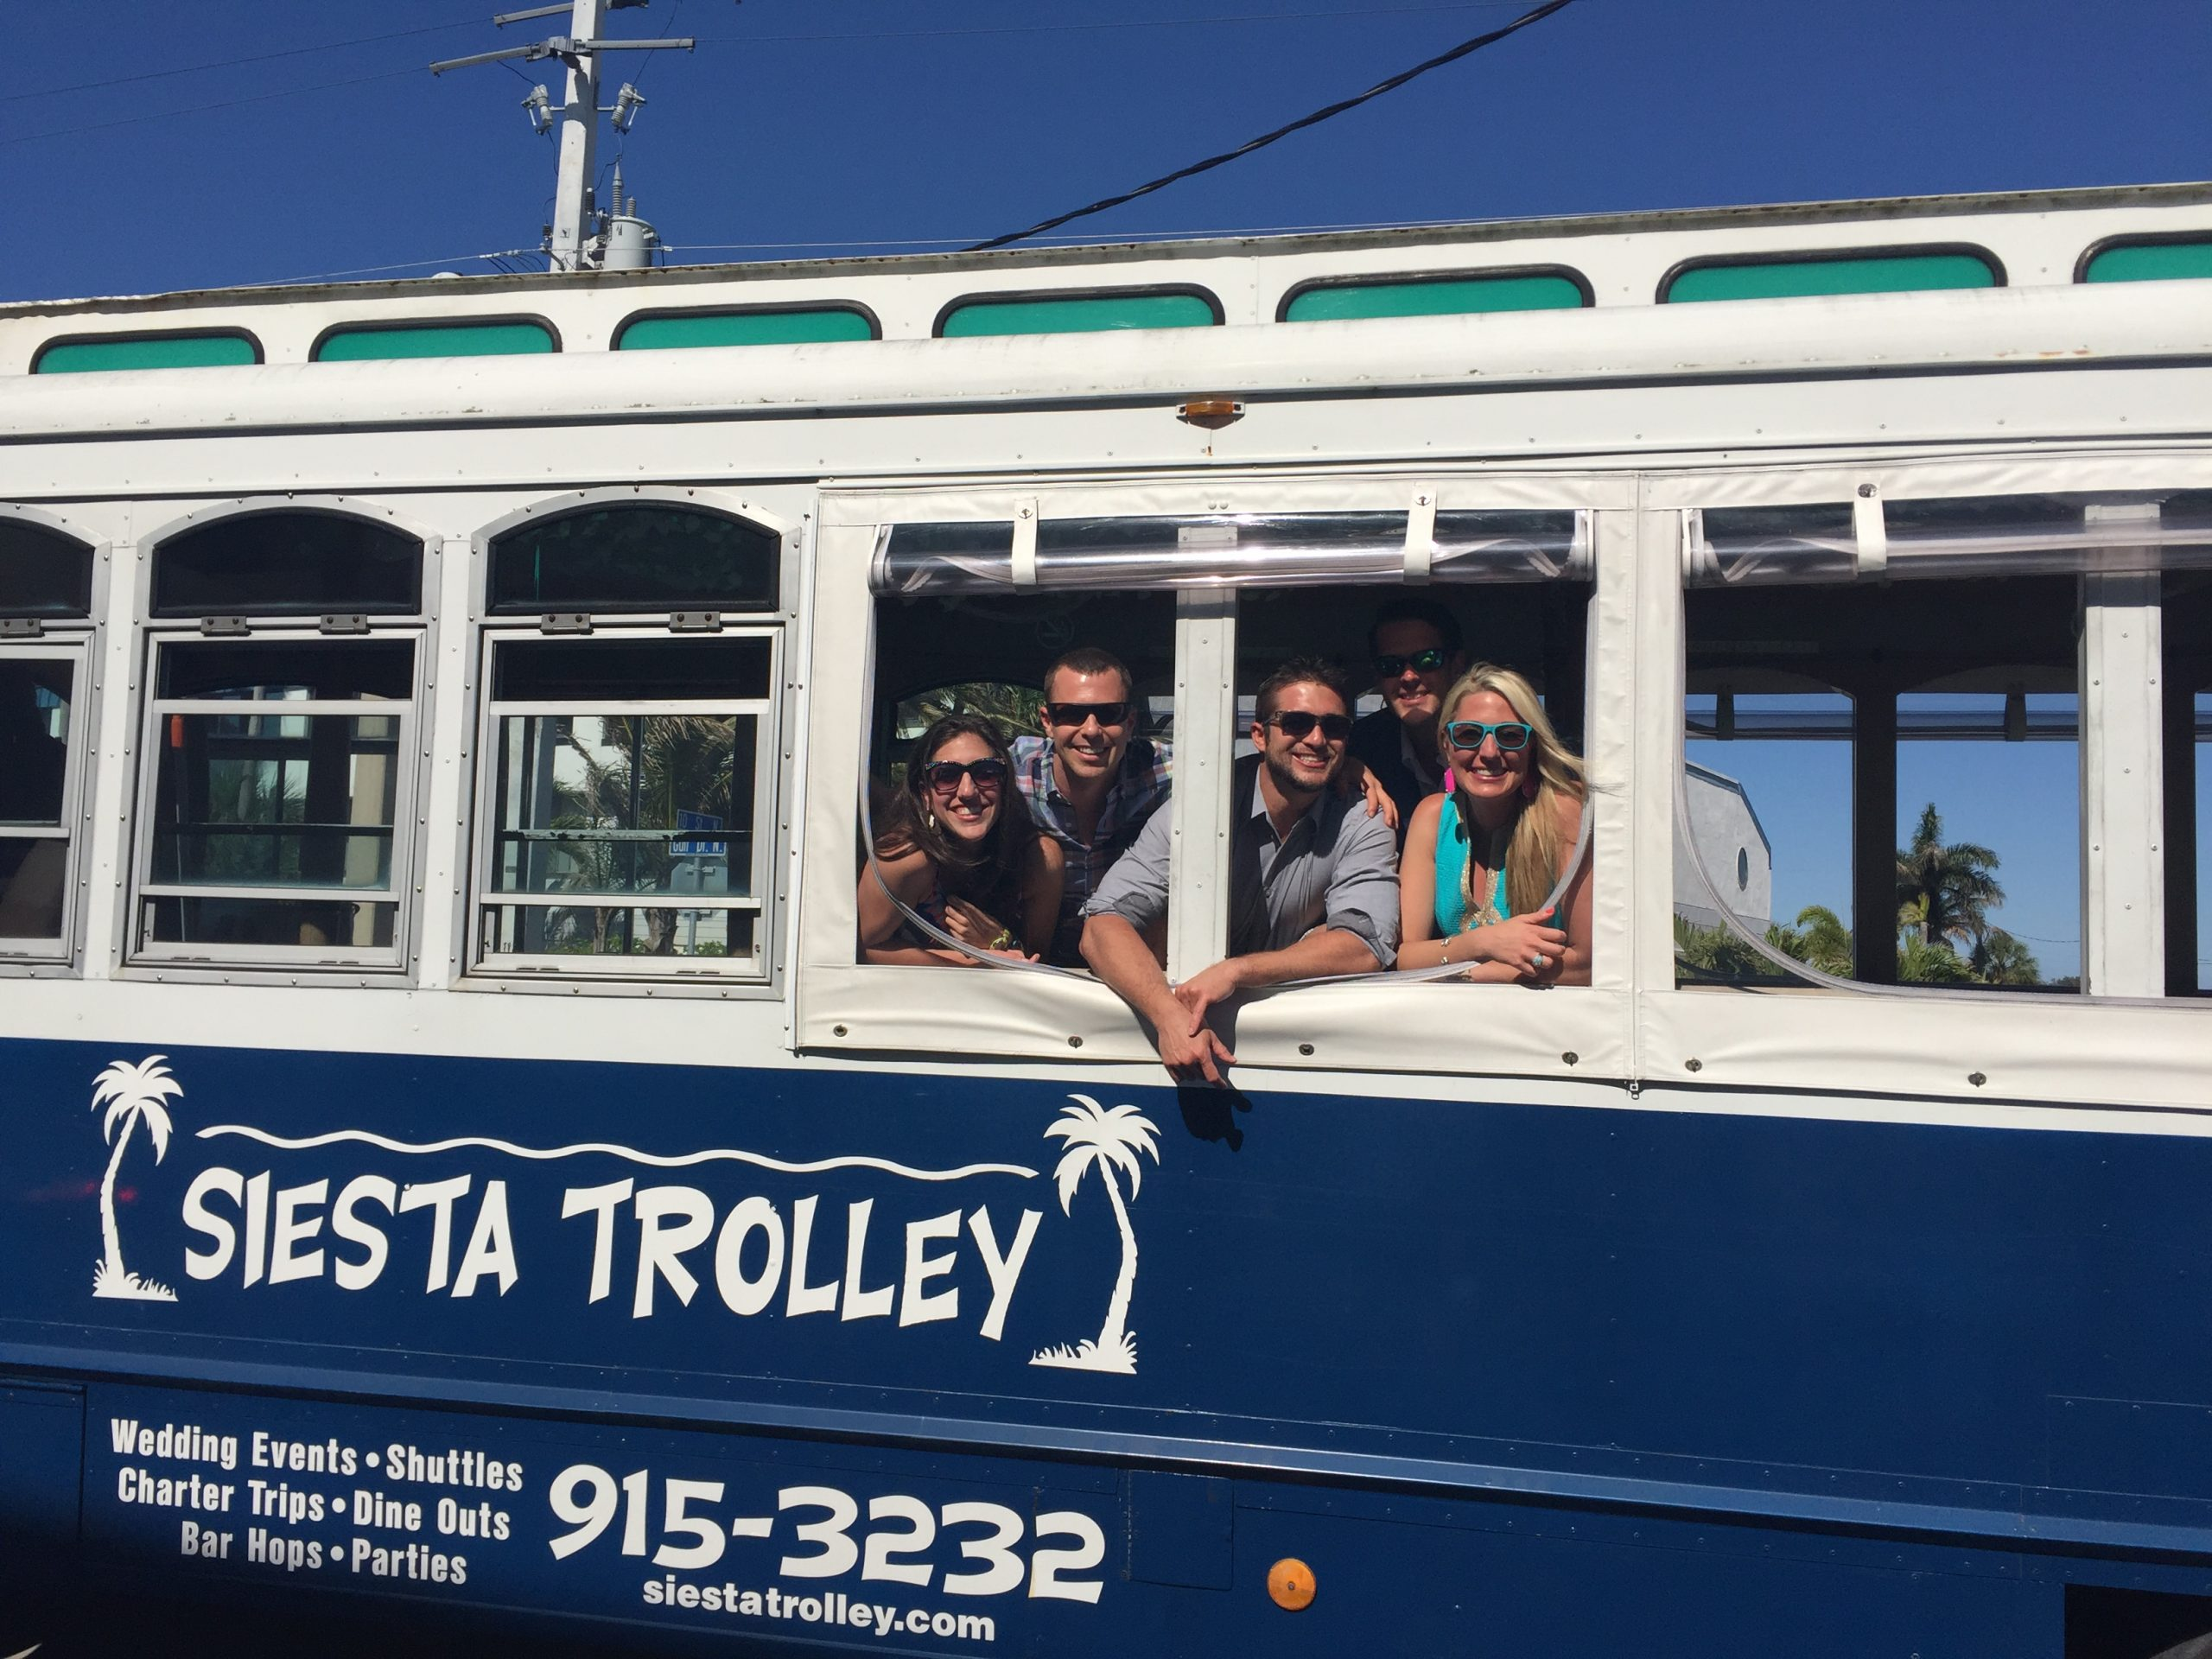 Siesta Trolley & Transportation Service